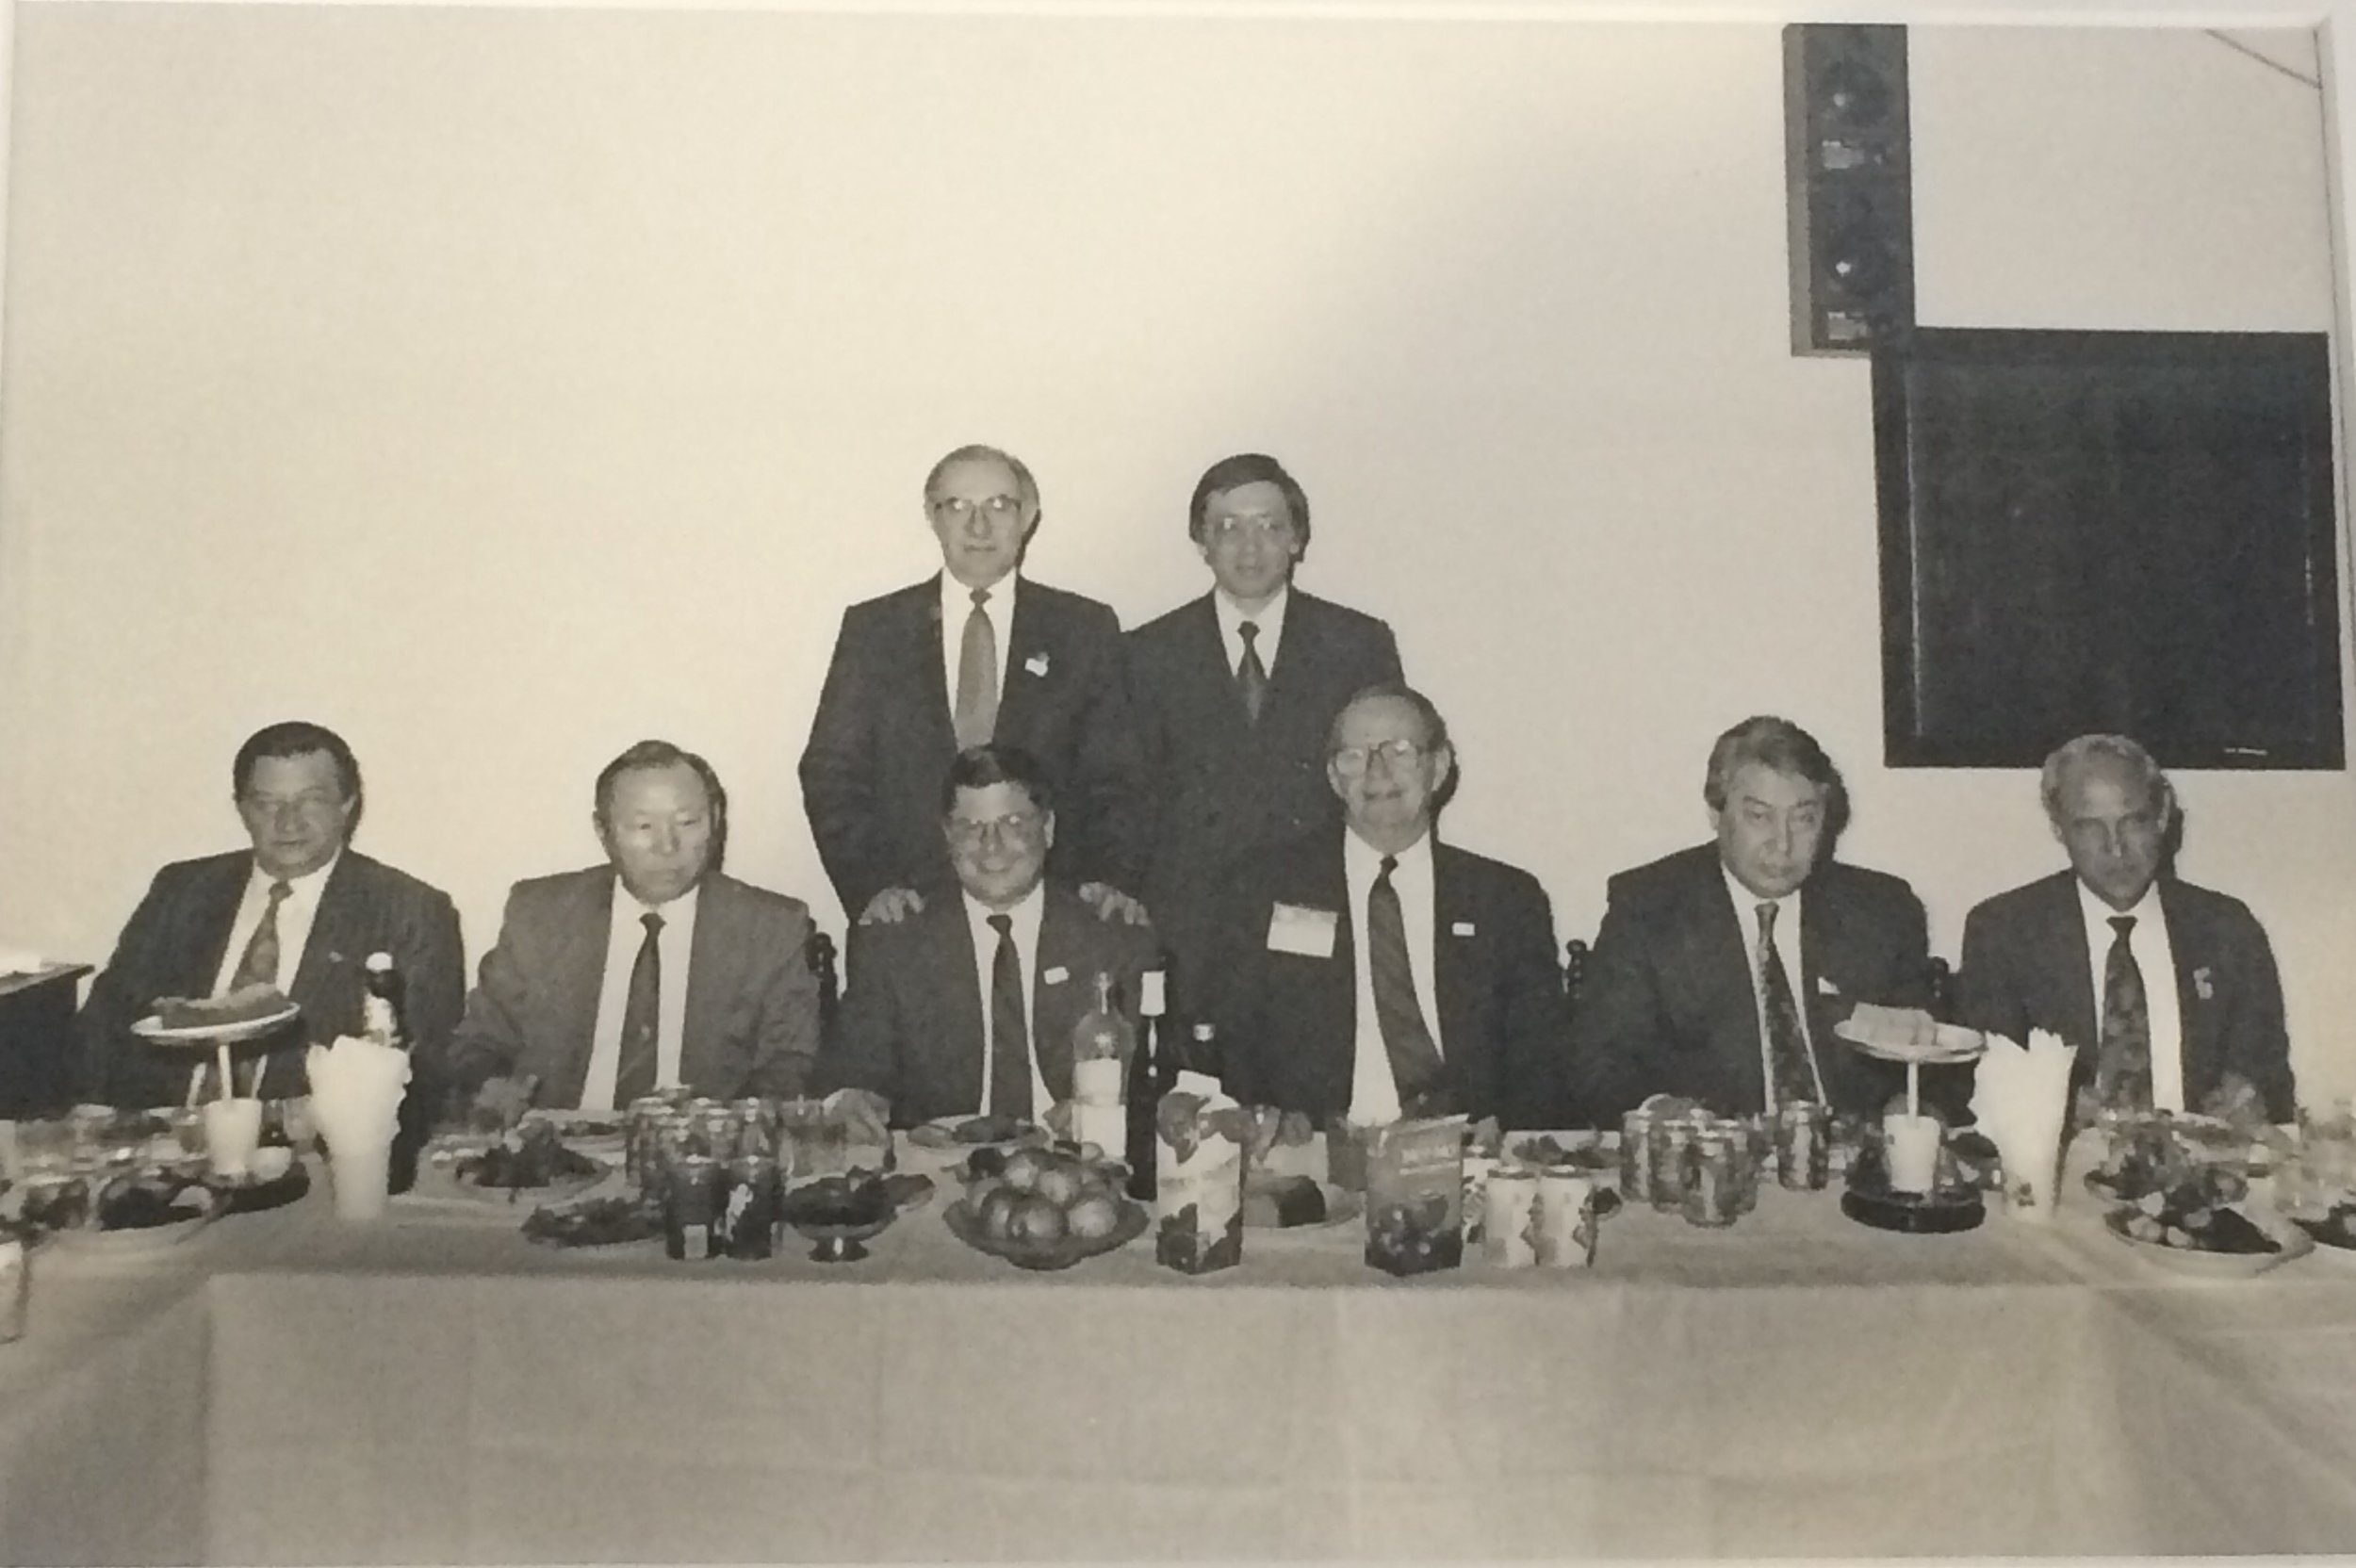 In March 1993, Dan Witt signed cooperation agreements with Russia's Ministry of Finance and Kazakhstan's Ministry of Finance to create ITIC. Bill Frenzel also participated in these missions and became ITIC's Founding Chairman of the Executive Committee.